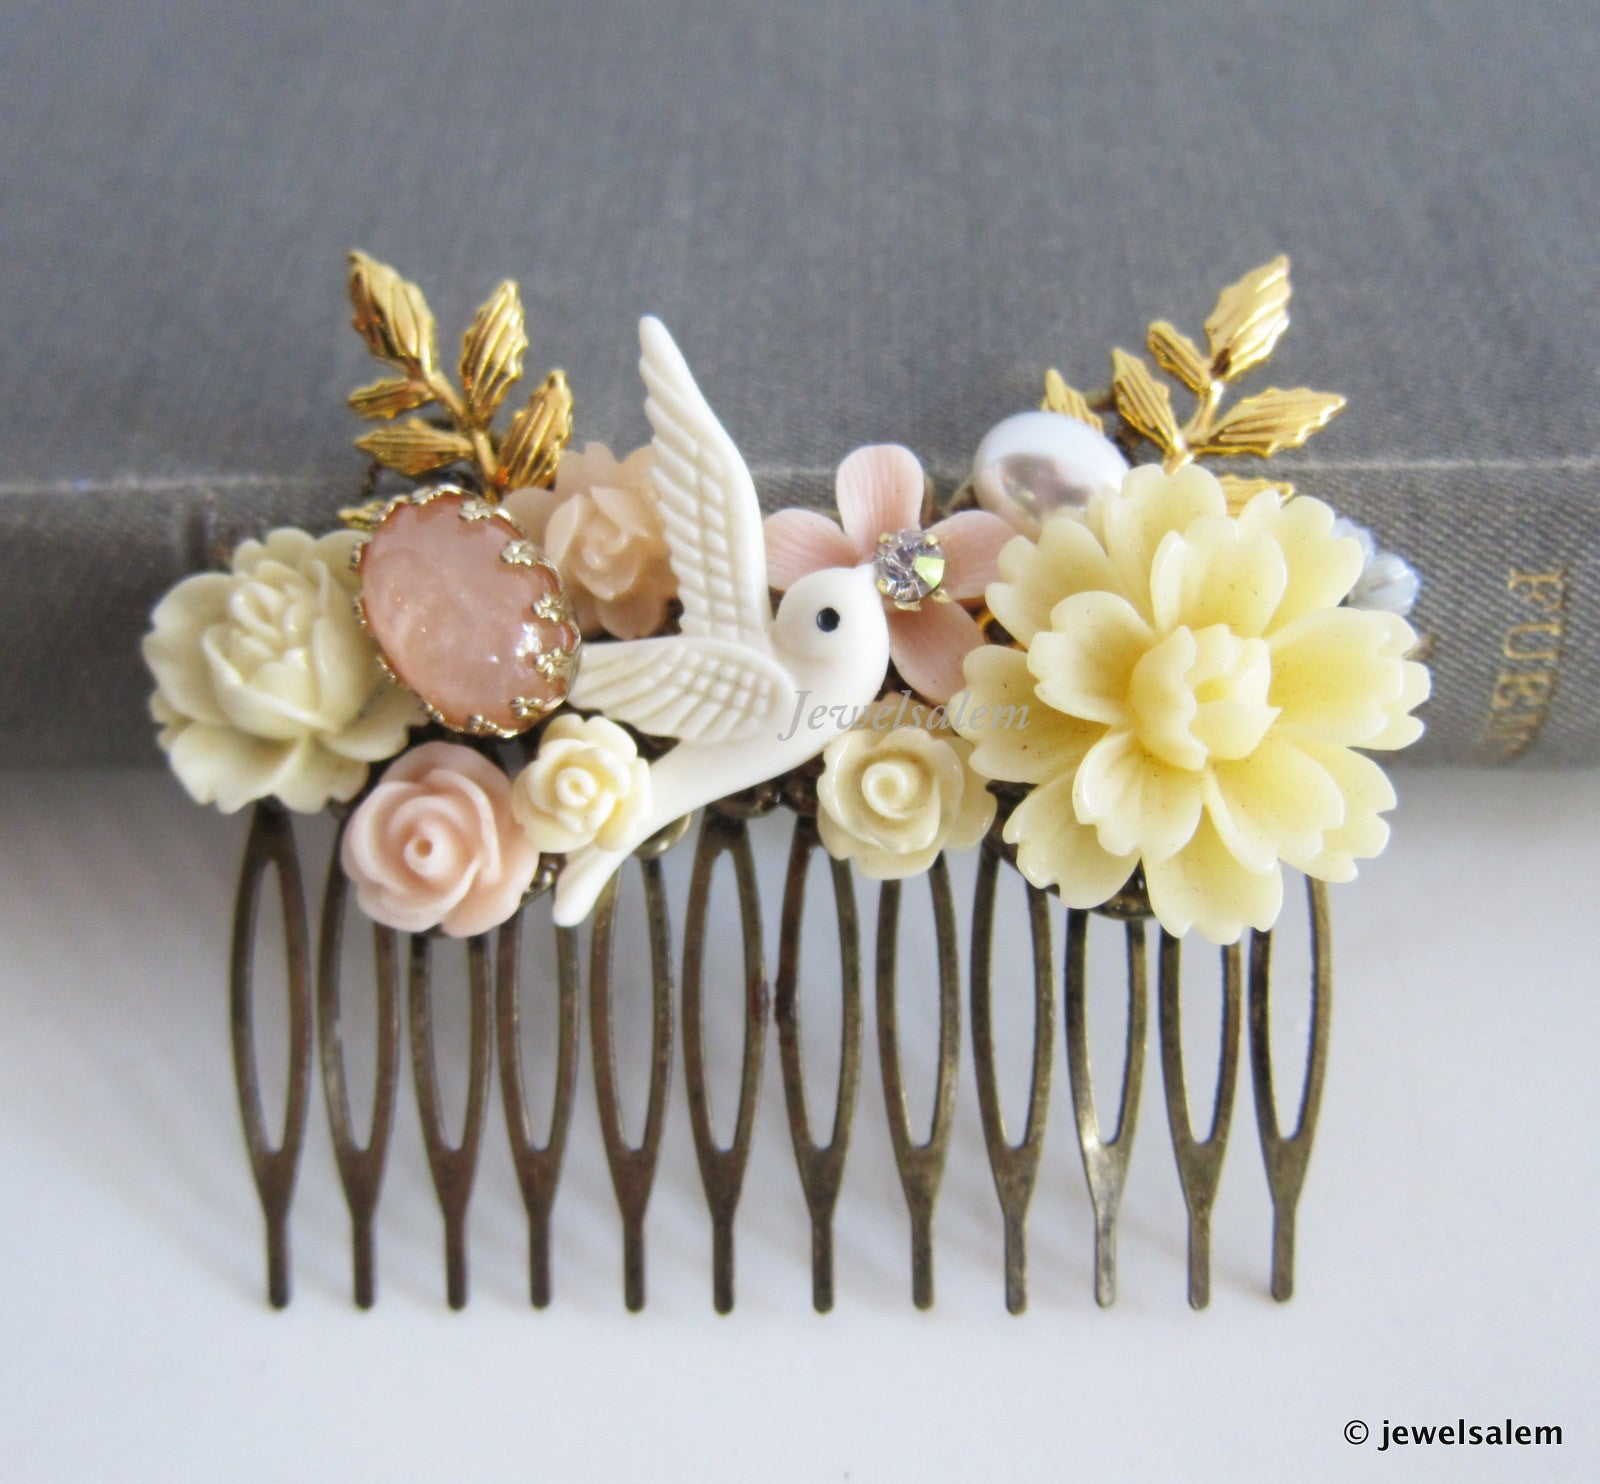 Bridal Hair Comb Ivory Pink Wedding Hair Accessories Blush Gold Bride Hair Adornment Romantic Floral Hair Pin Bridesmaid Gift - Jewelsalem